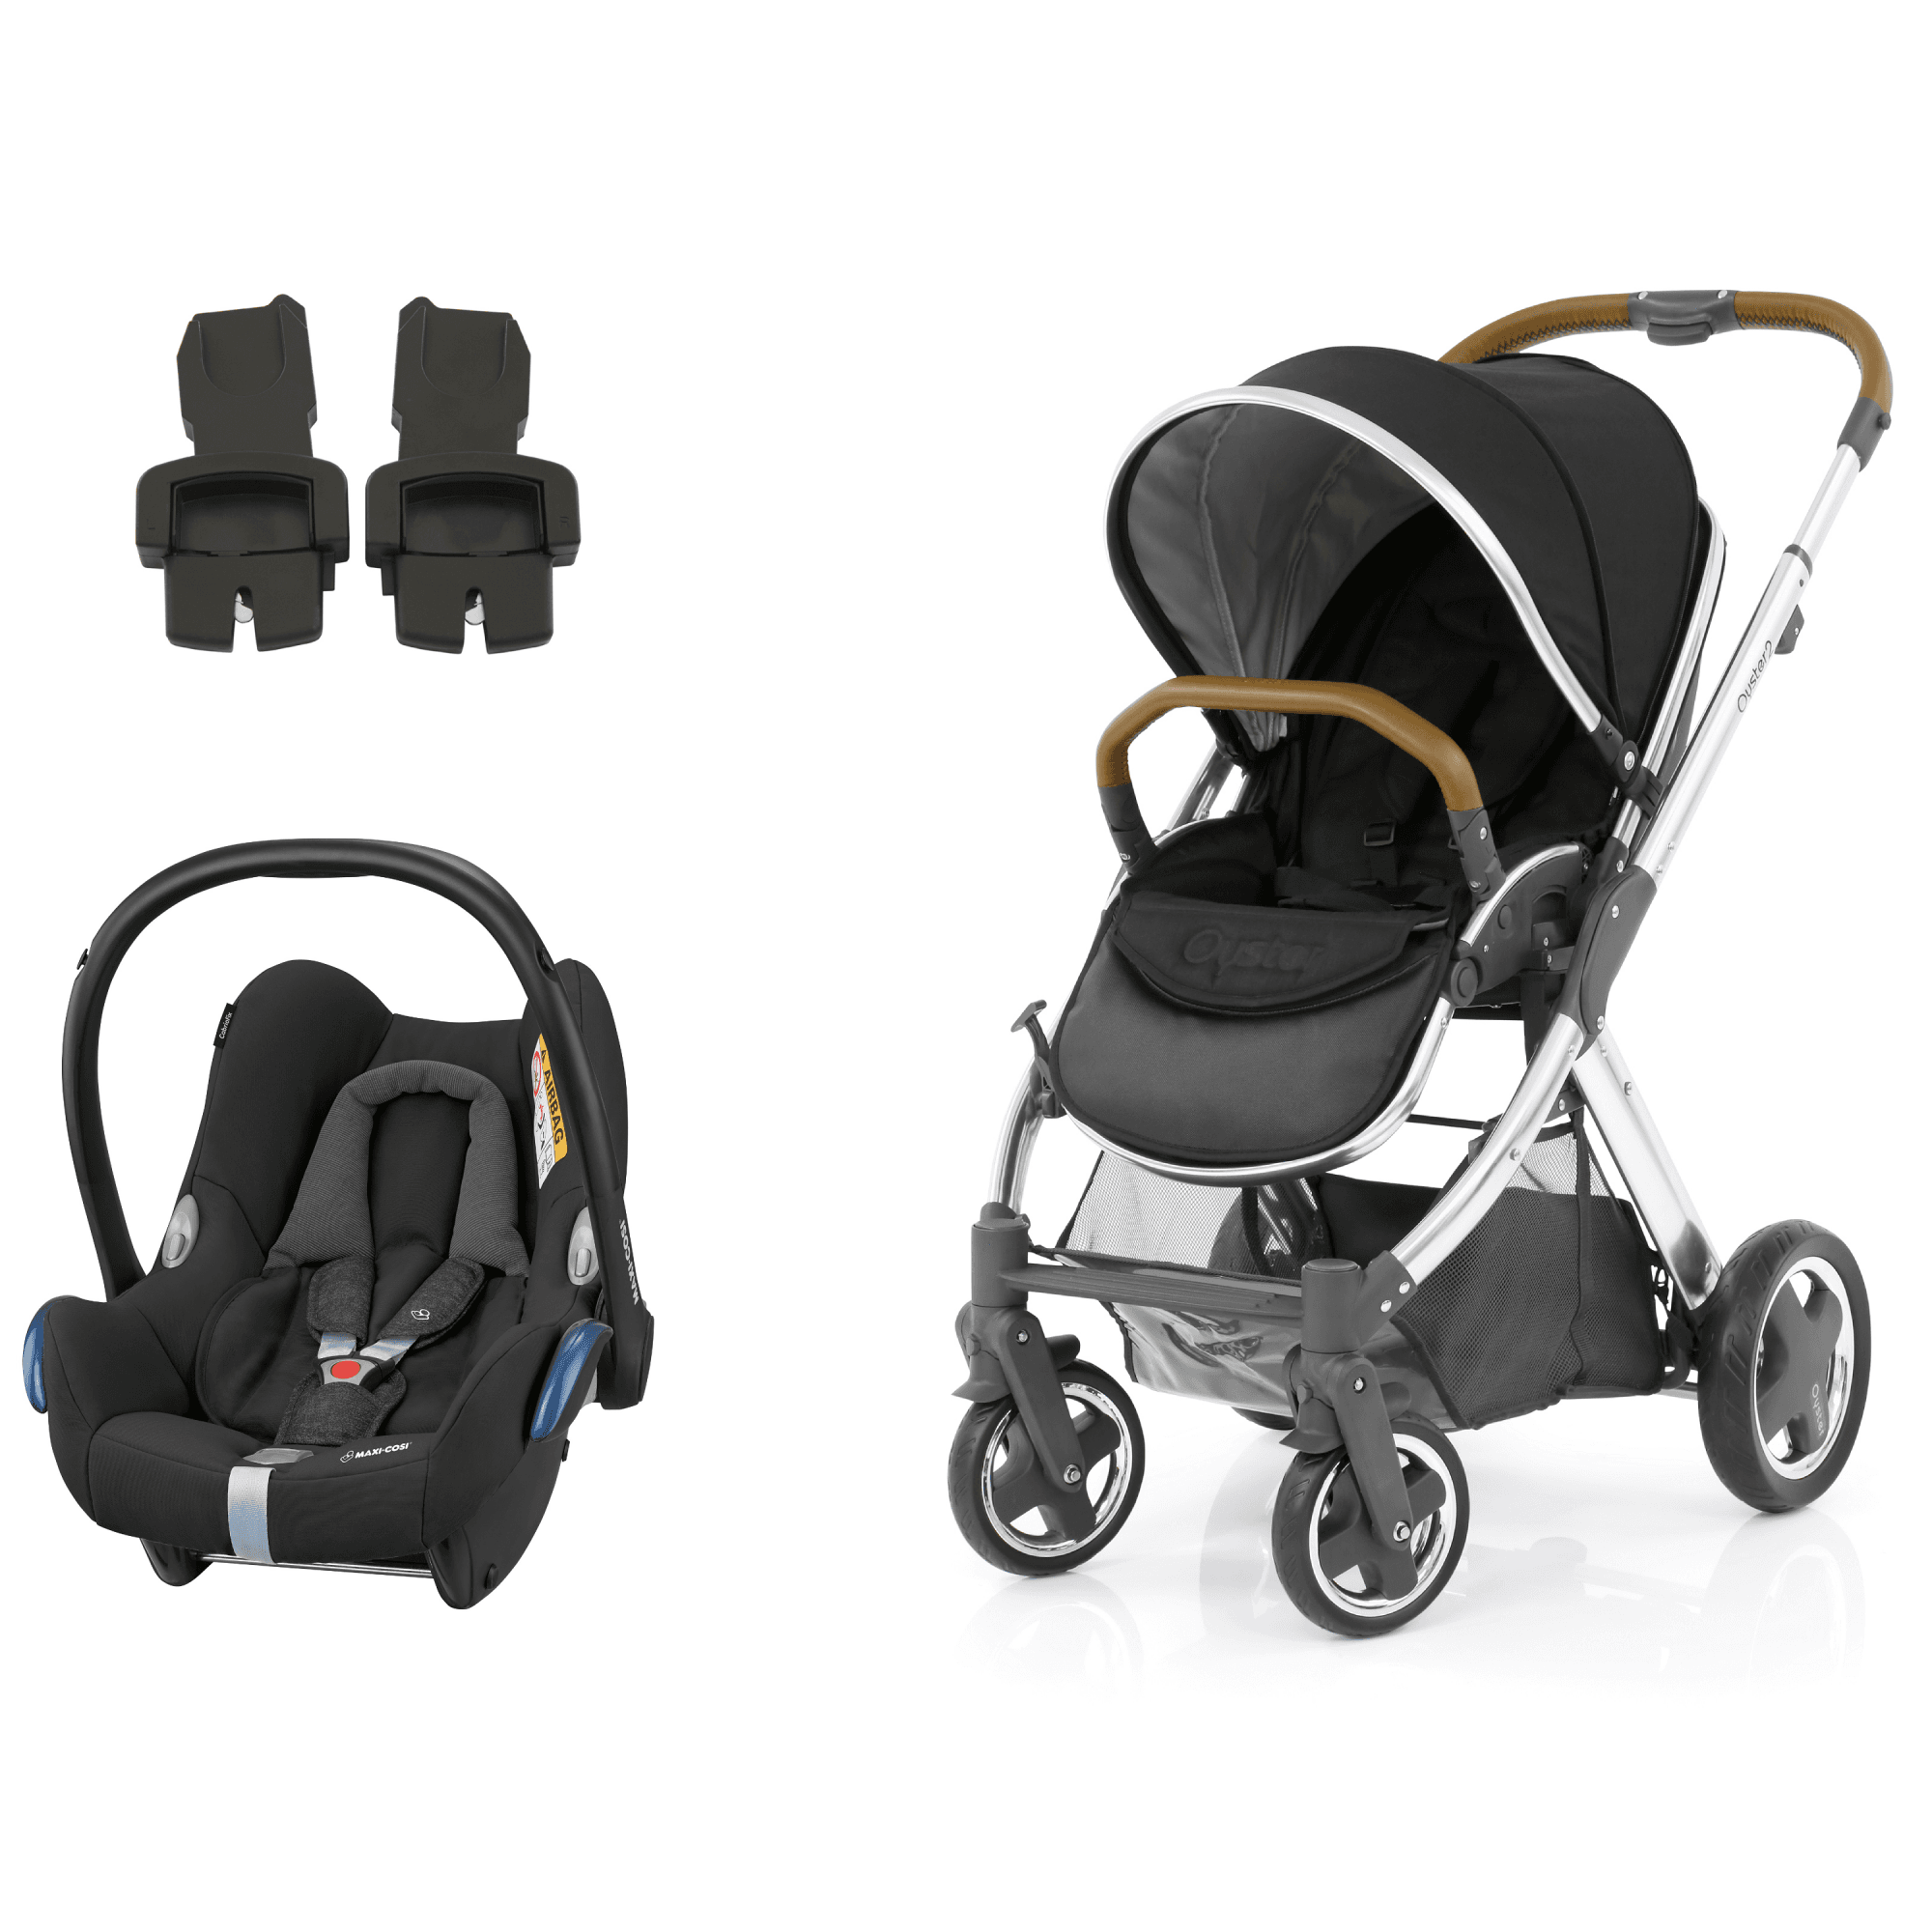 Babystyle Oyster Maxi-Cosi Car Seat Adapters